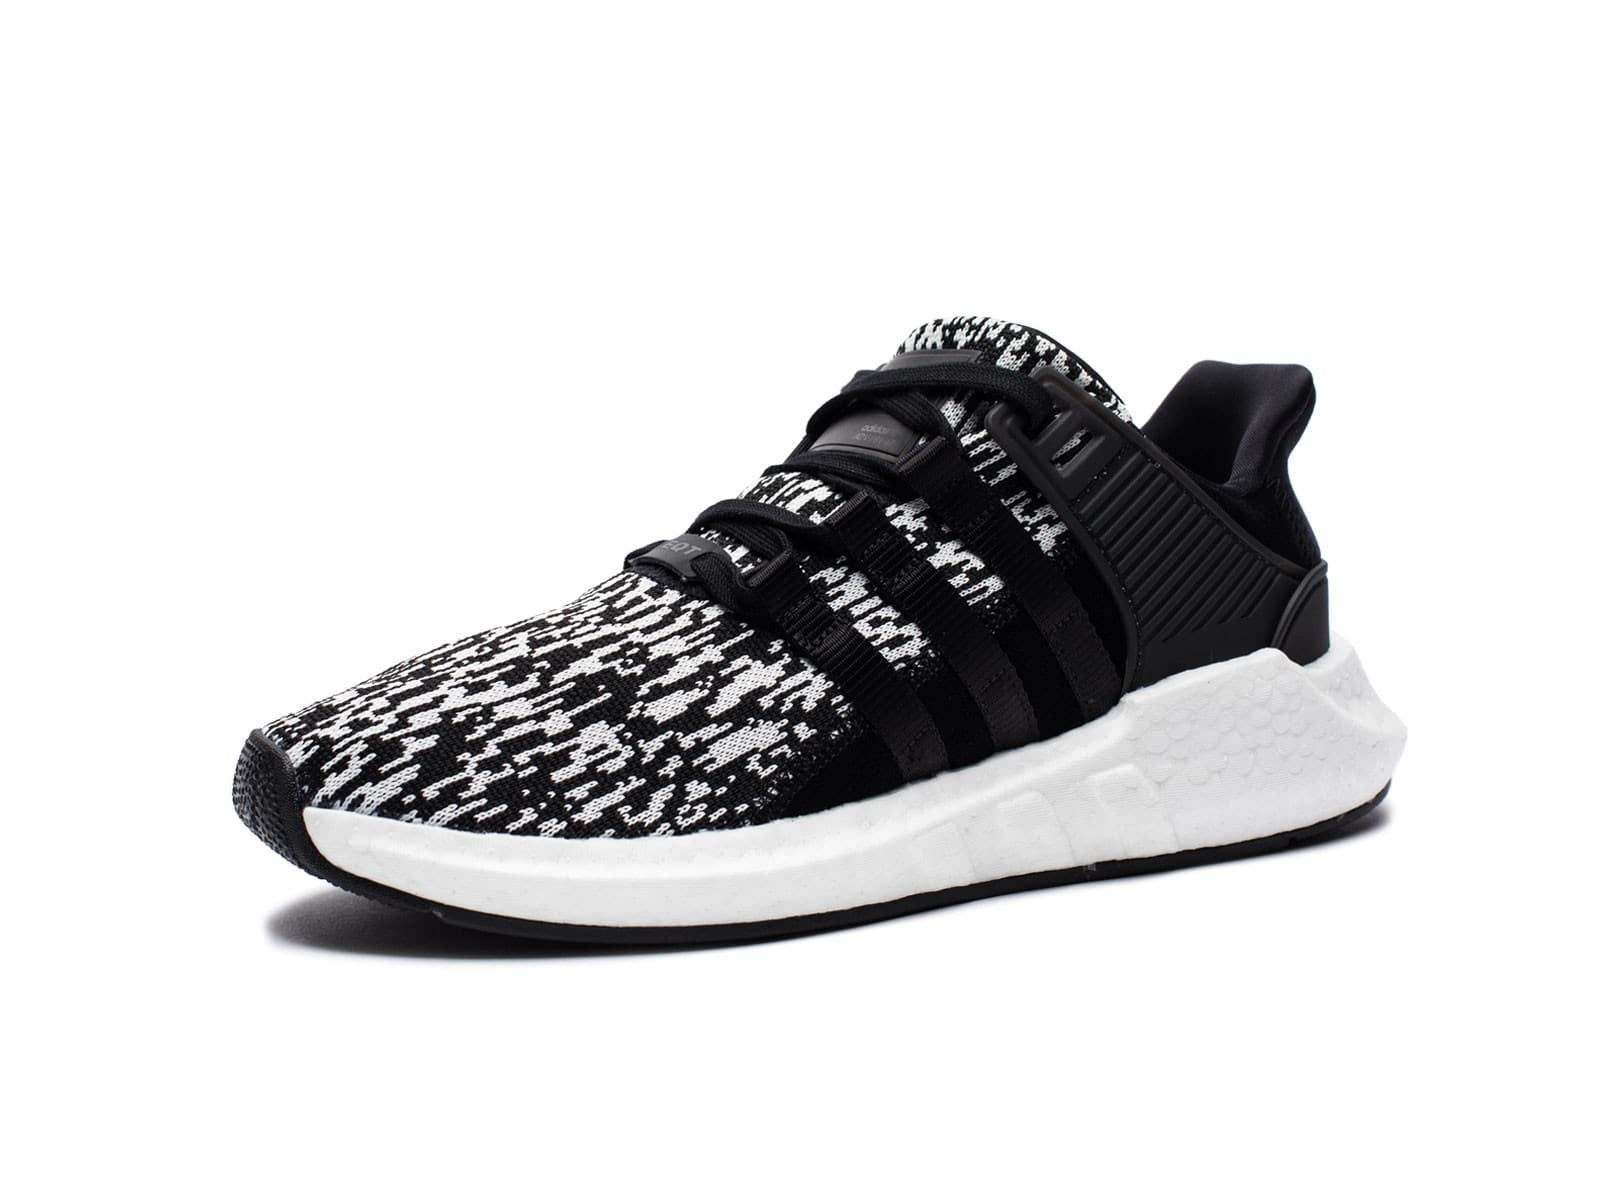 newest 85f57 38f71 EQT SUPPORT 93/17 - BLACK/WHITE | Undefeated